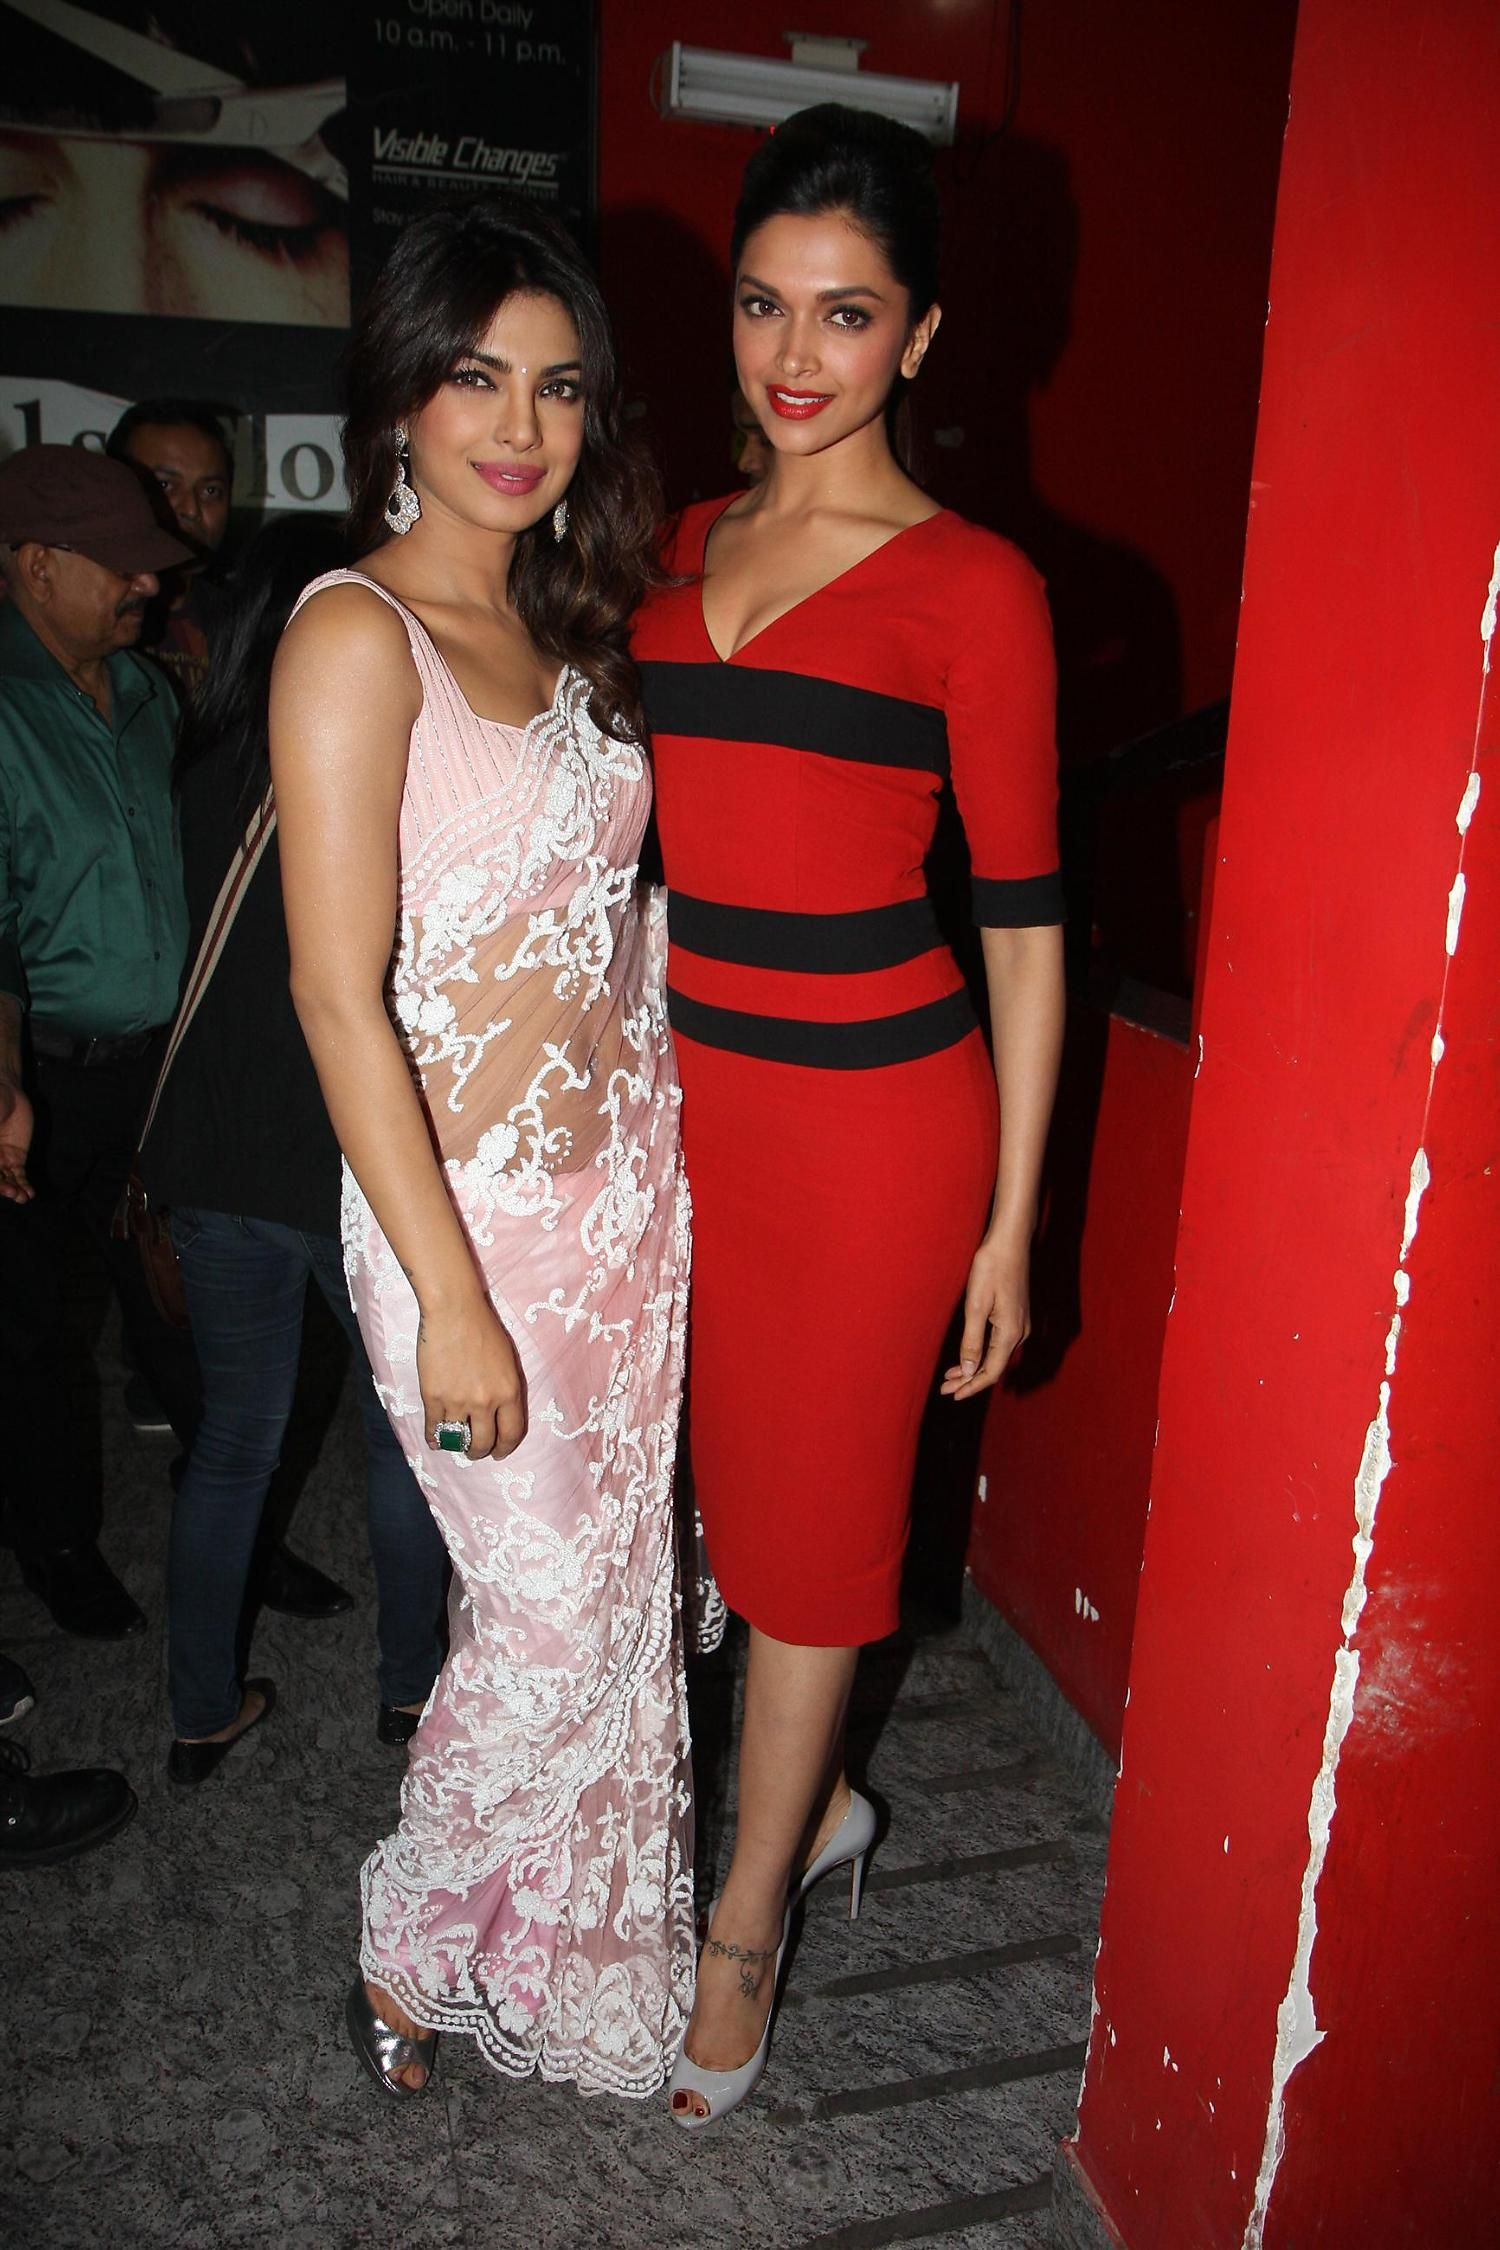 Priyanka Chopra Deepika Padukone Bollywood Girls Priyanka Chopra Wedding Priyanka Chopra